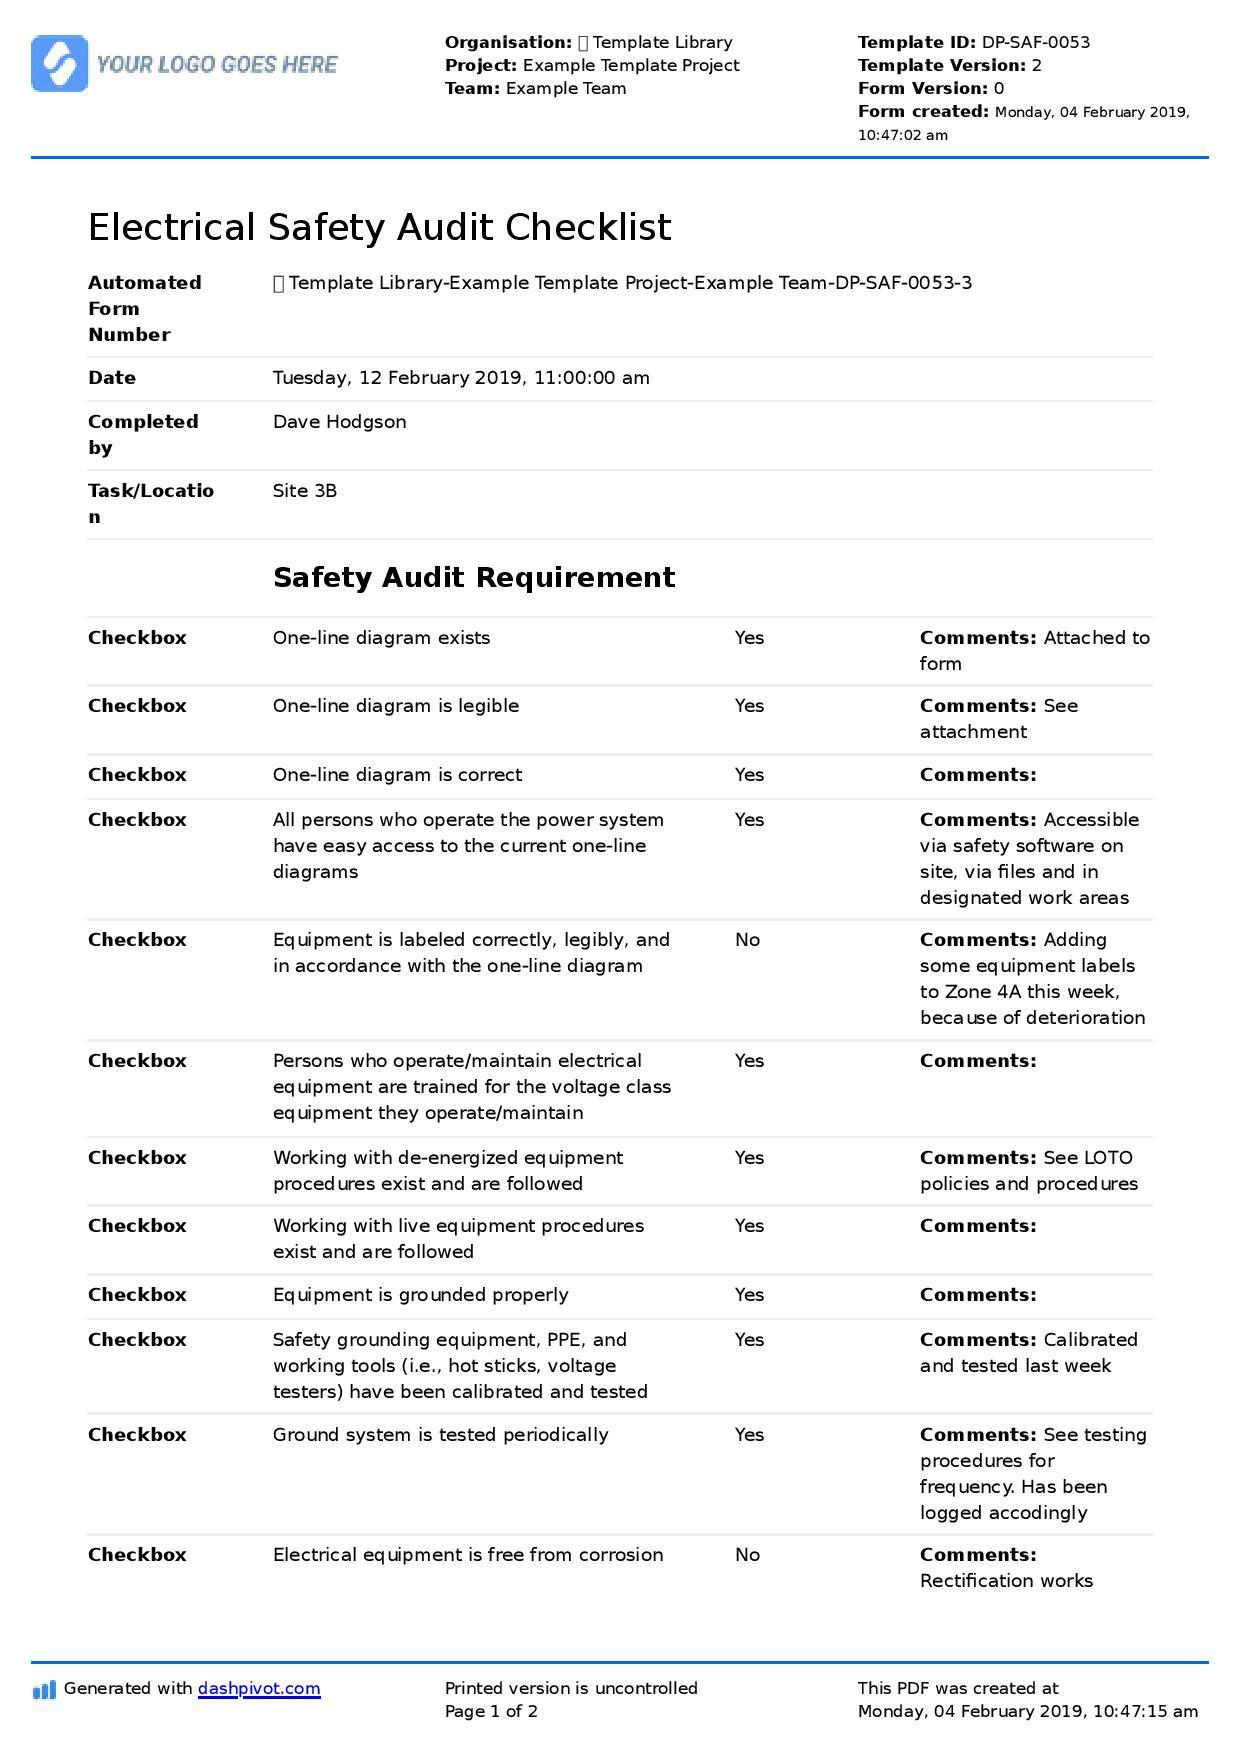 Electrical Safety Audit Checklist Template